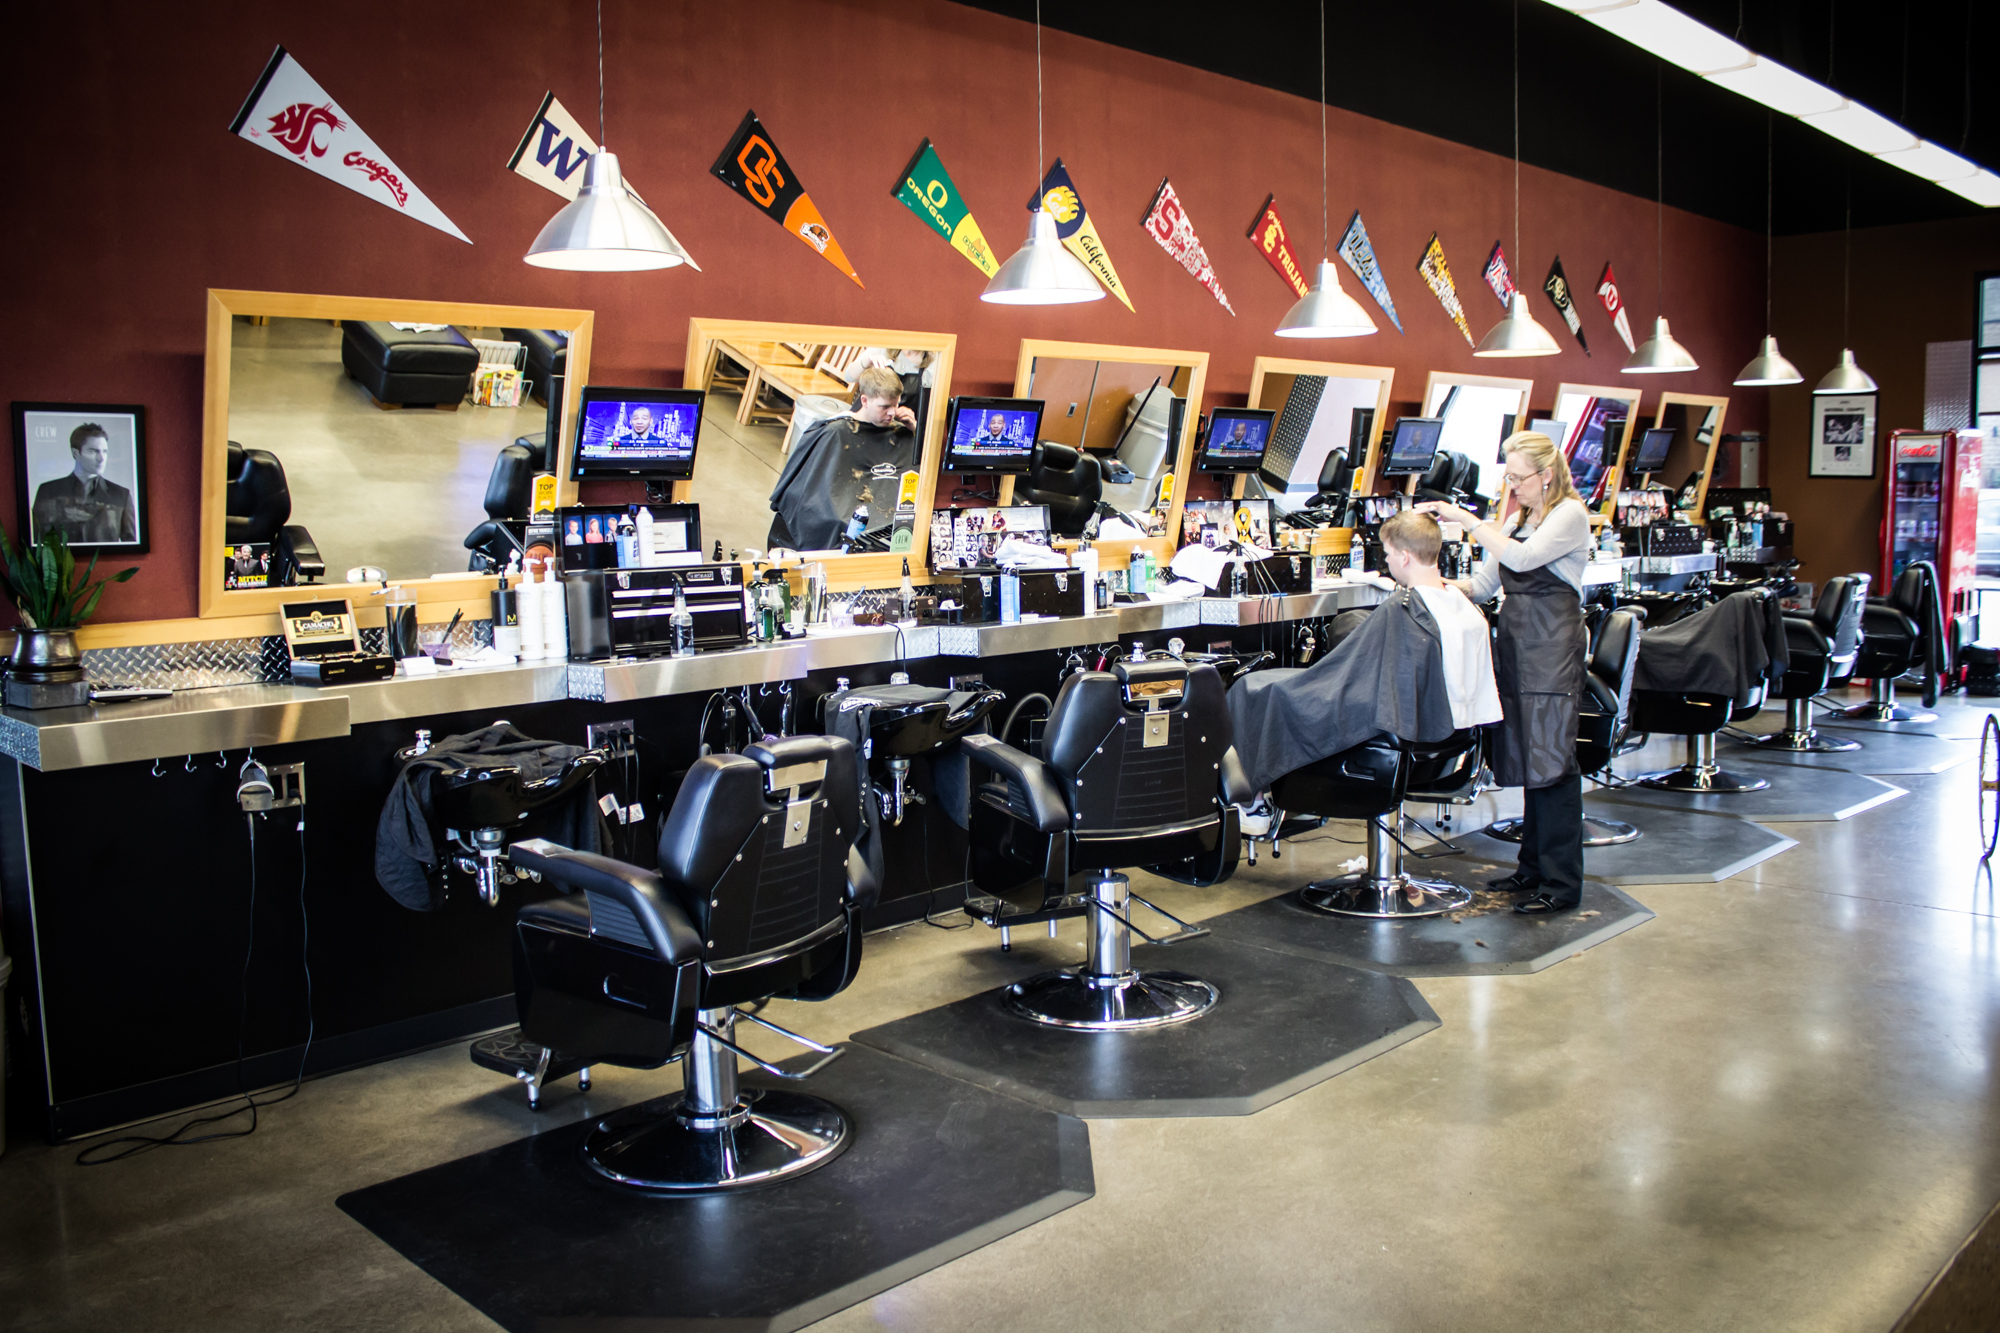 The Barbers at Progress Ridge TownSquare